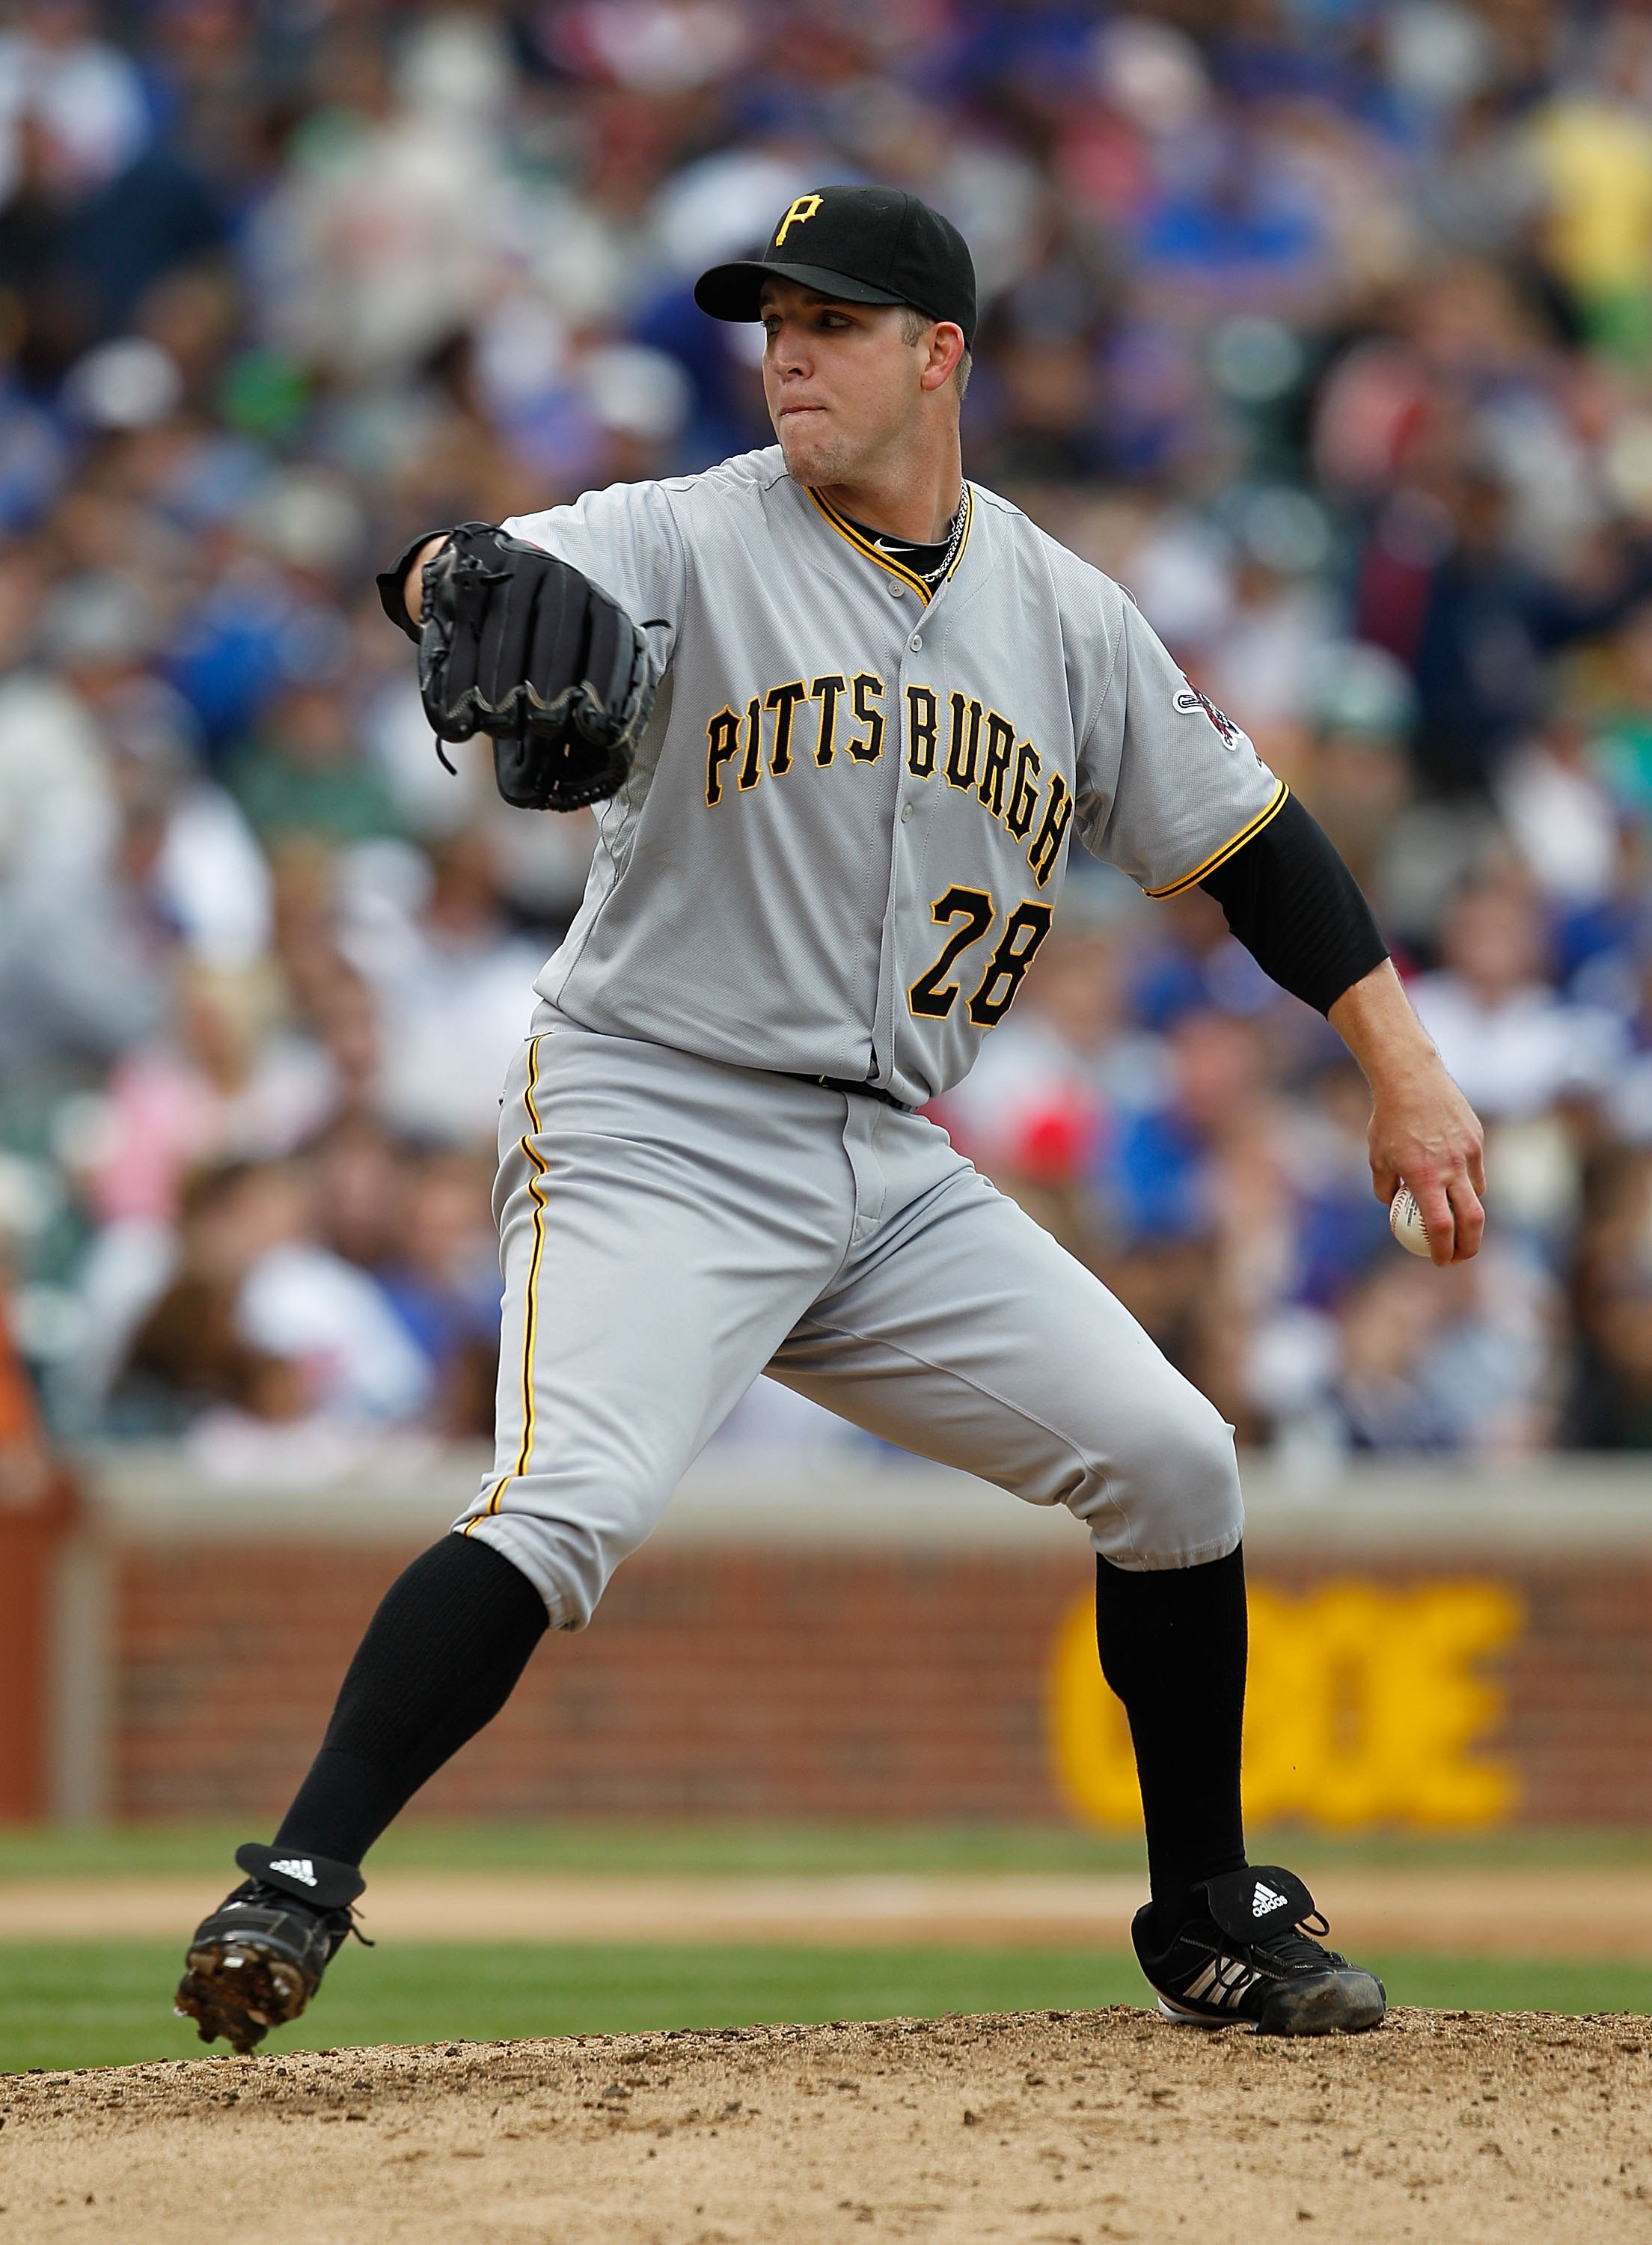 CHICAGO - MAY 15: Starting pitcher Paul Maholm #28 of the Pittsburgh Pirates delivers the ball against the Chicago Cubs at Wrigley Field on May 15, 2010 in Chicago, Illinois. The Pirates defeated the Cubs 4-3.  (Photo by Jonathan Daniel/Getty Images)